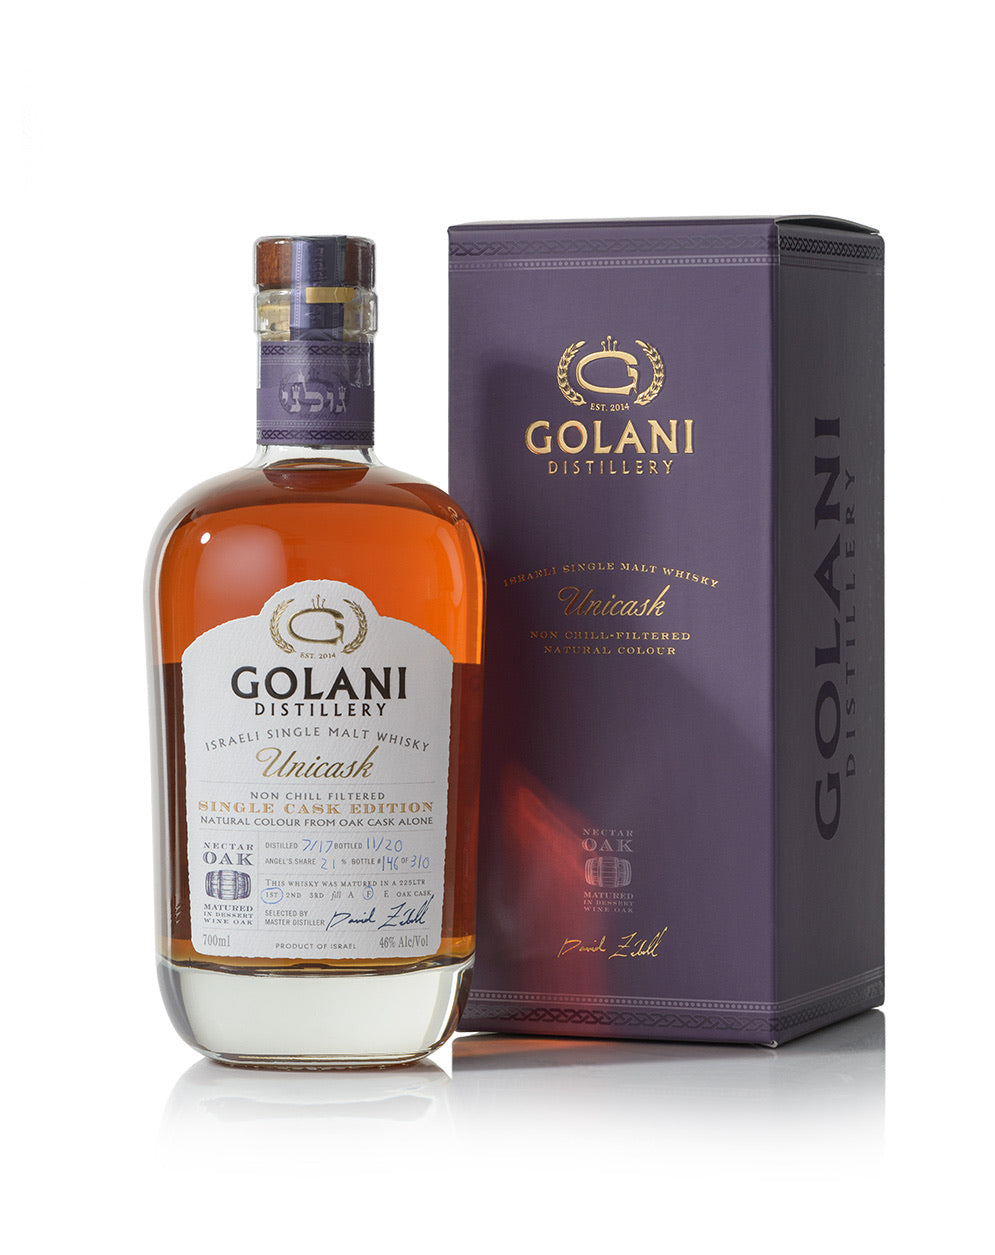 Golani Unicask Single Malt Single Cask 1st release # 100 release bottle number - 1 thru 310 46% 700 ml